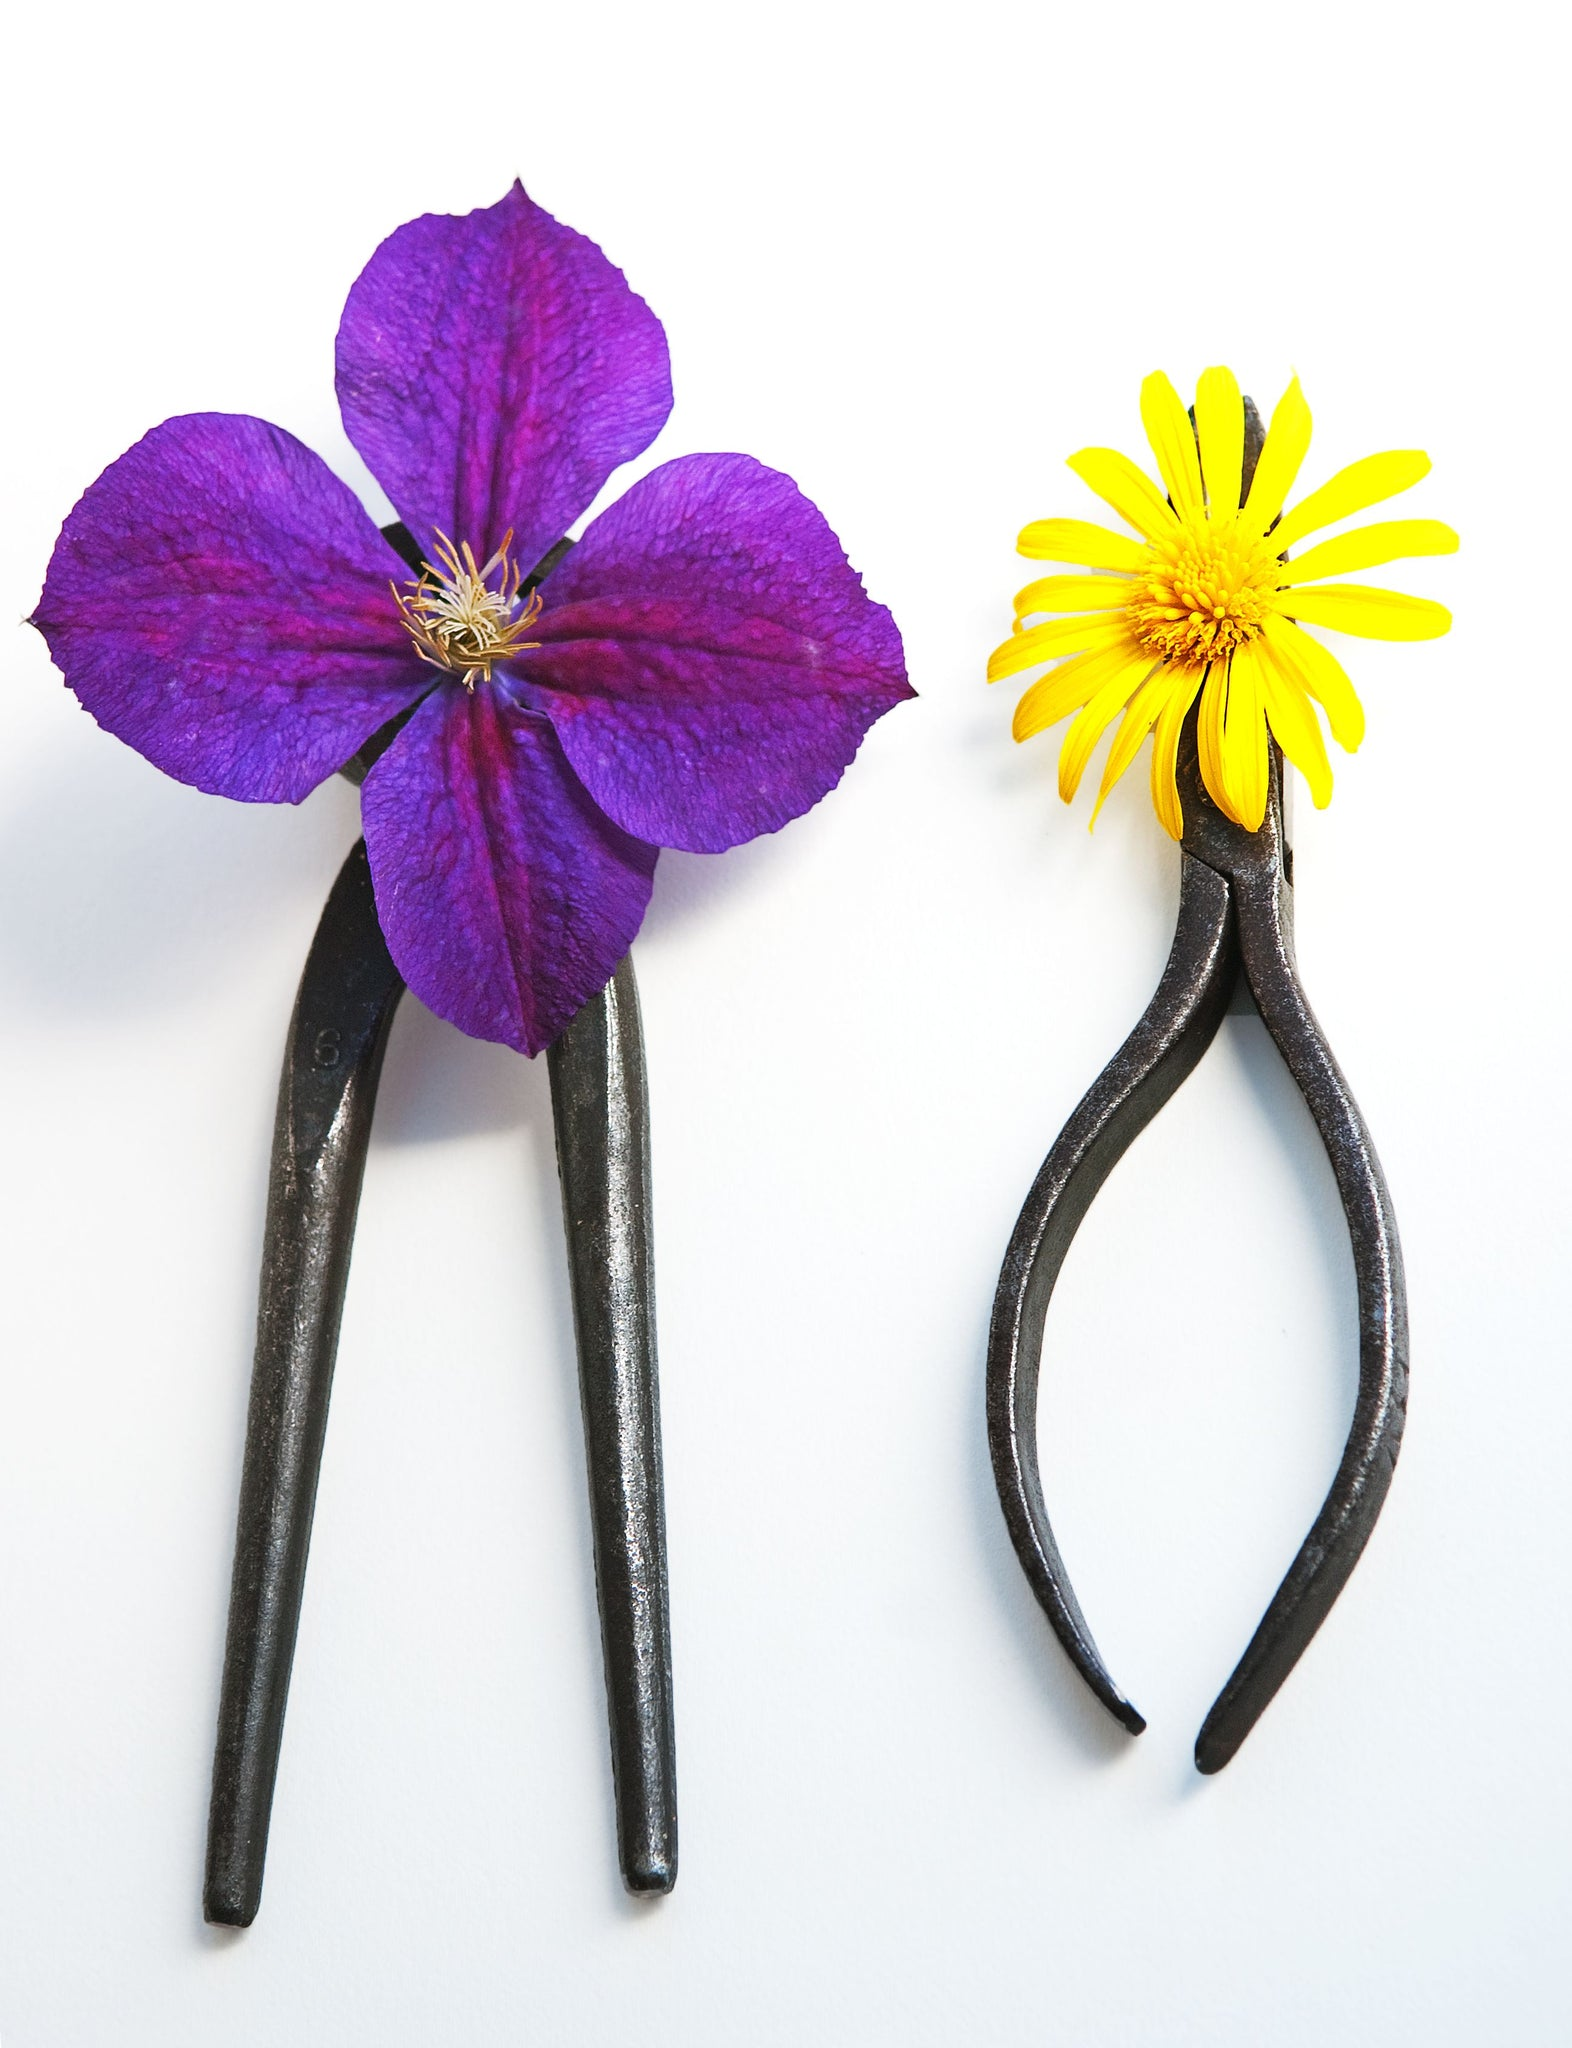 Dating of Mister Clematis Pinzers with Miss Daisy Pliers